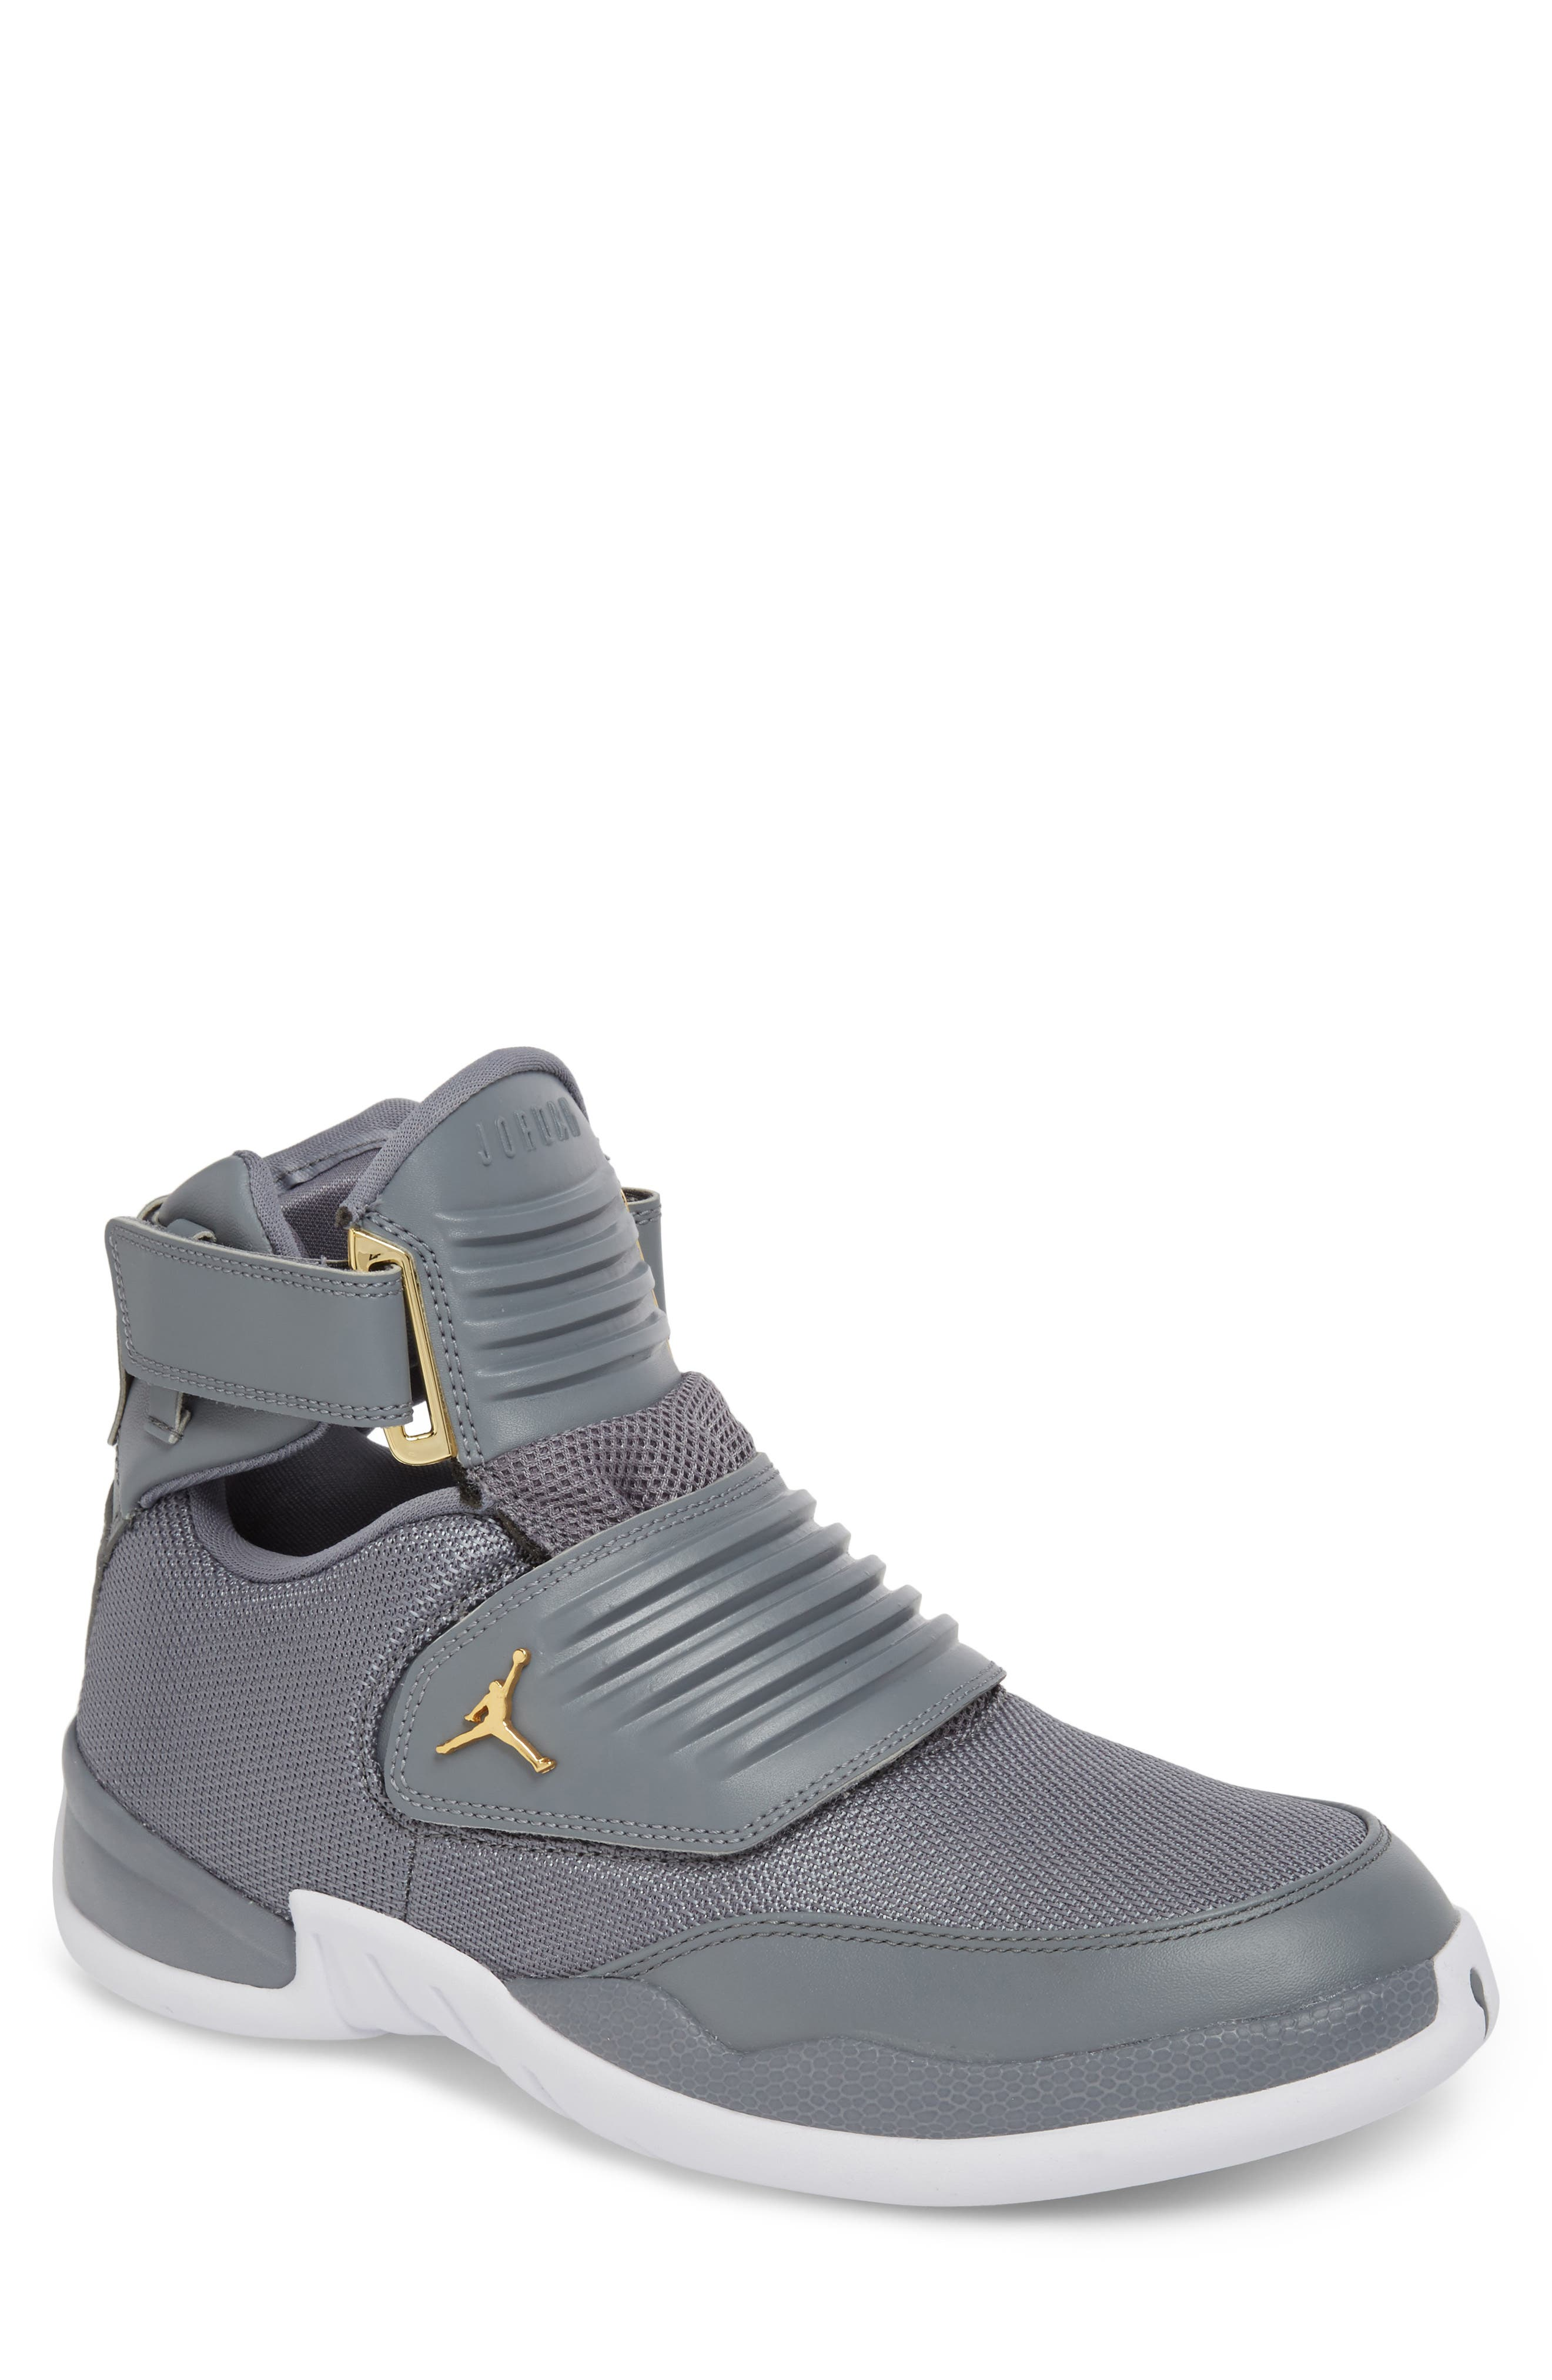 Alternate Image 1 Selected - Nike Jordan Generation High Top Sneaker (Men)